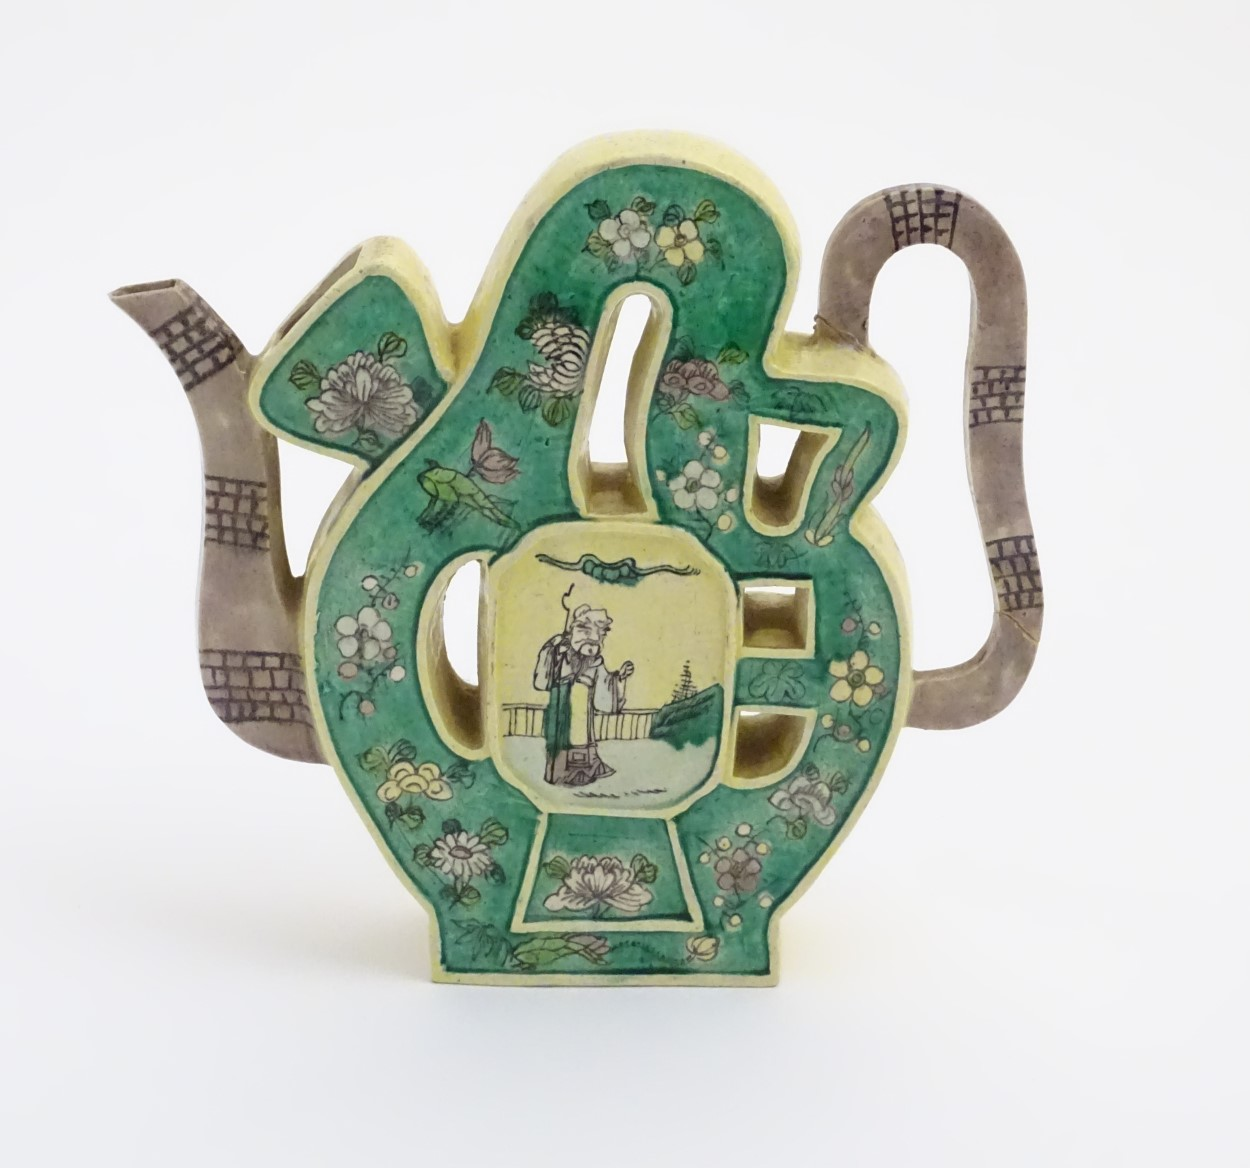 Lot 13 - A Chinese Kangxi flat wine ewer with famille verte hand painted decoration and raised panels to